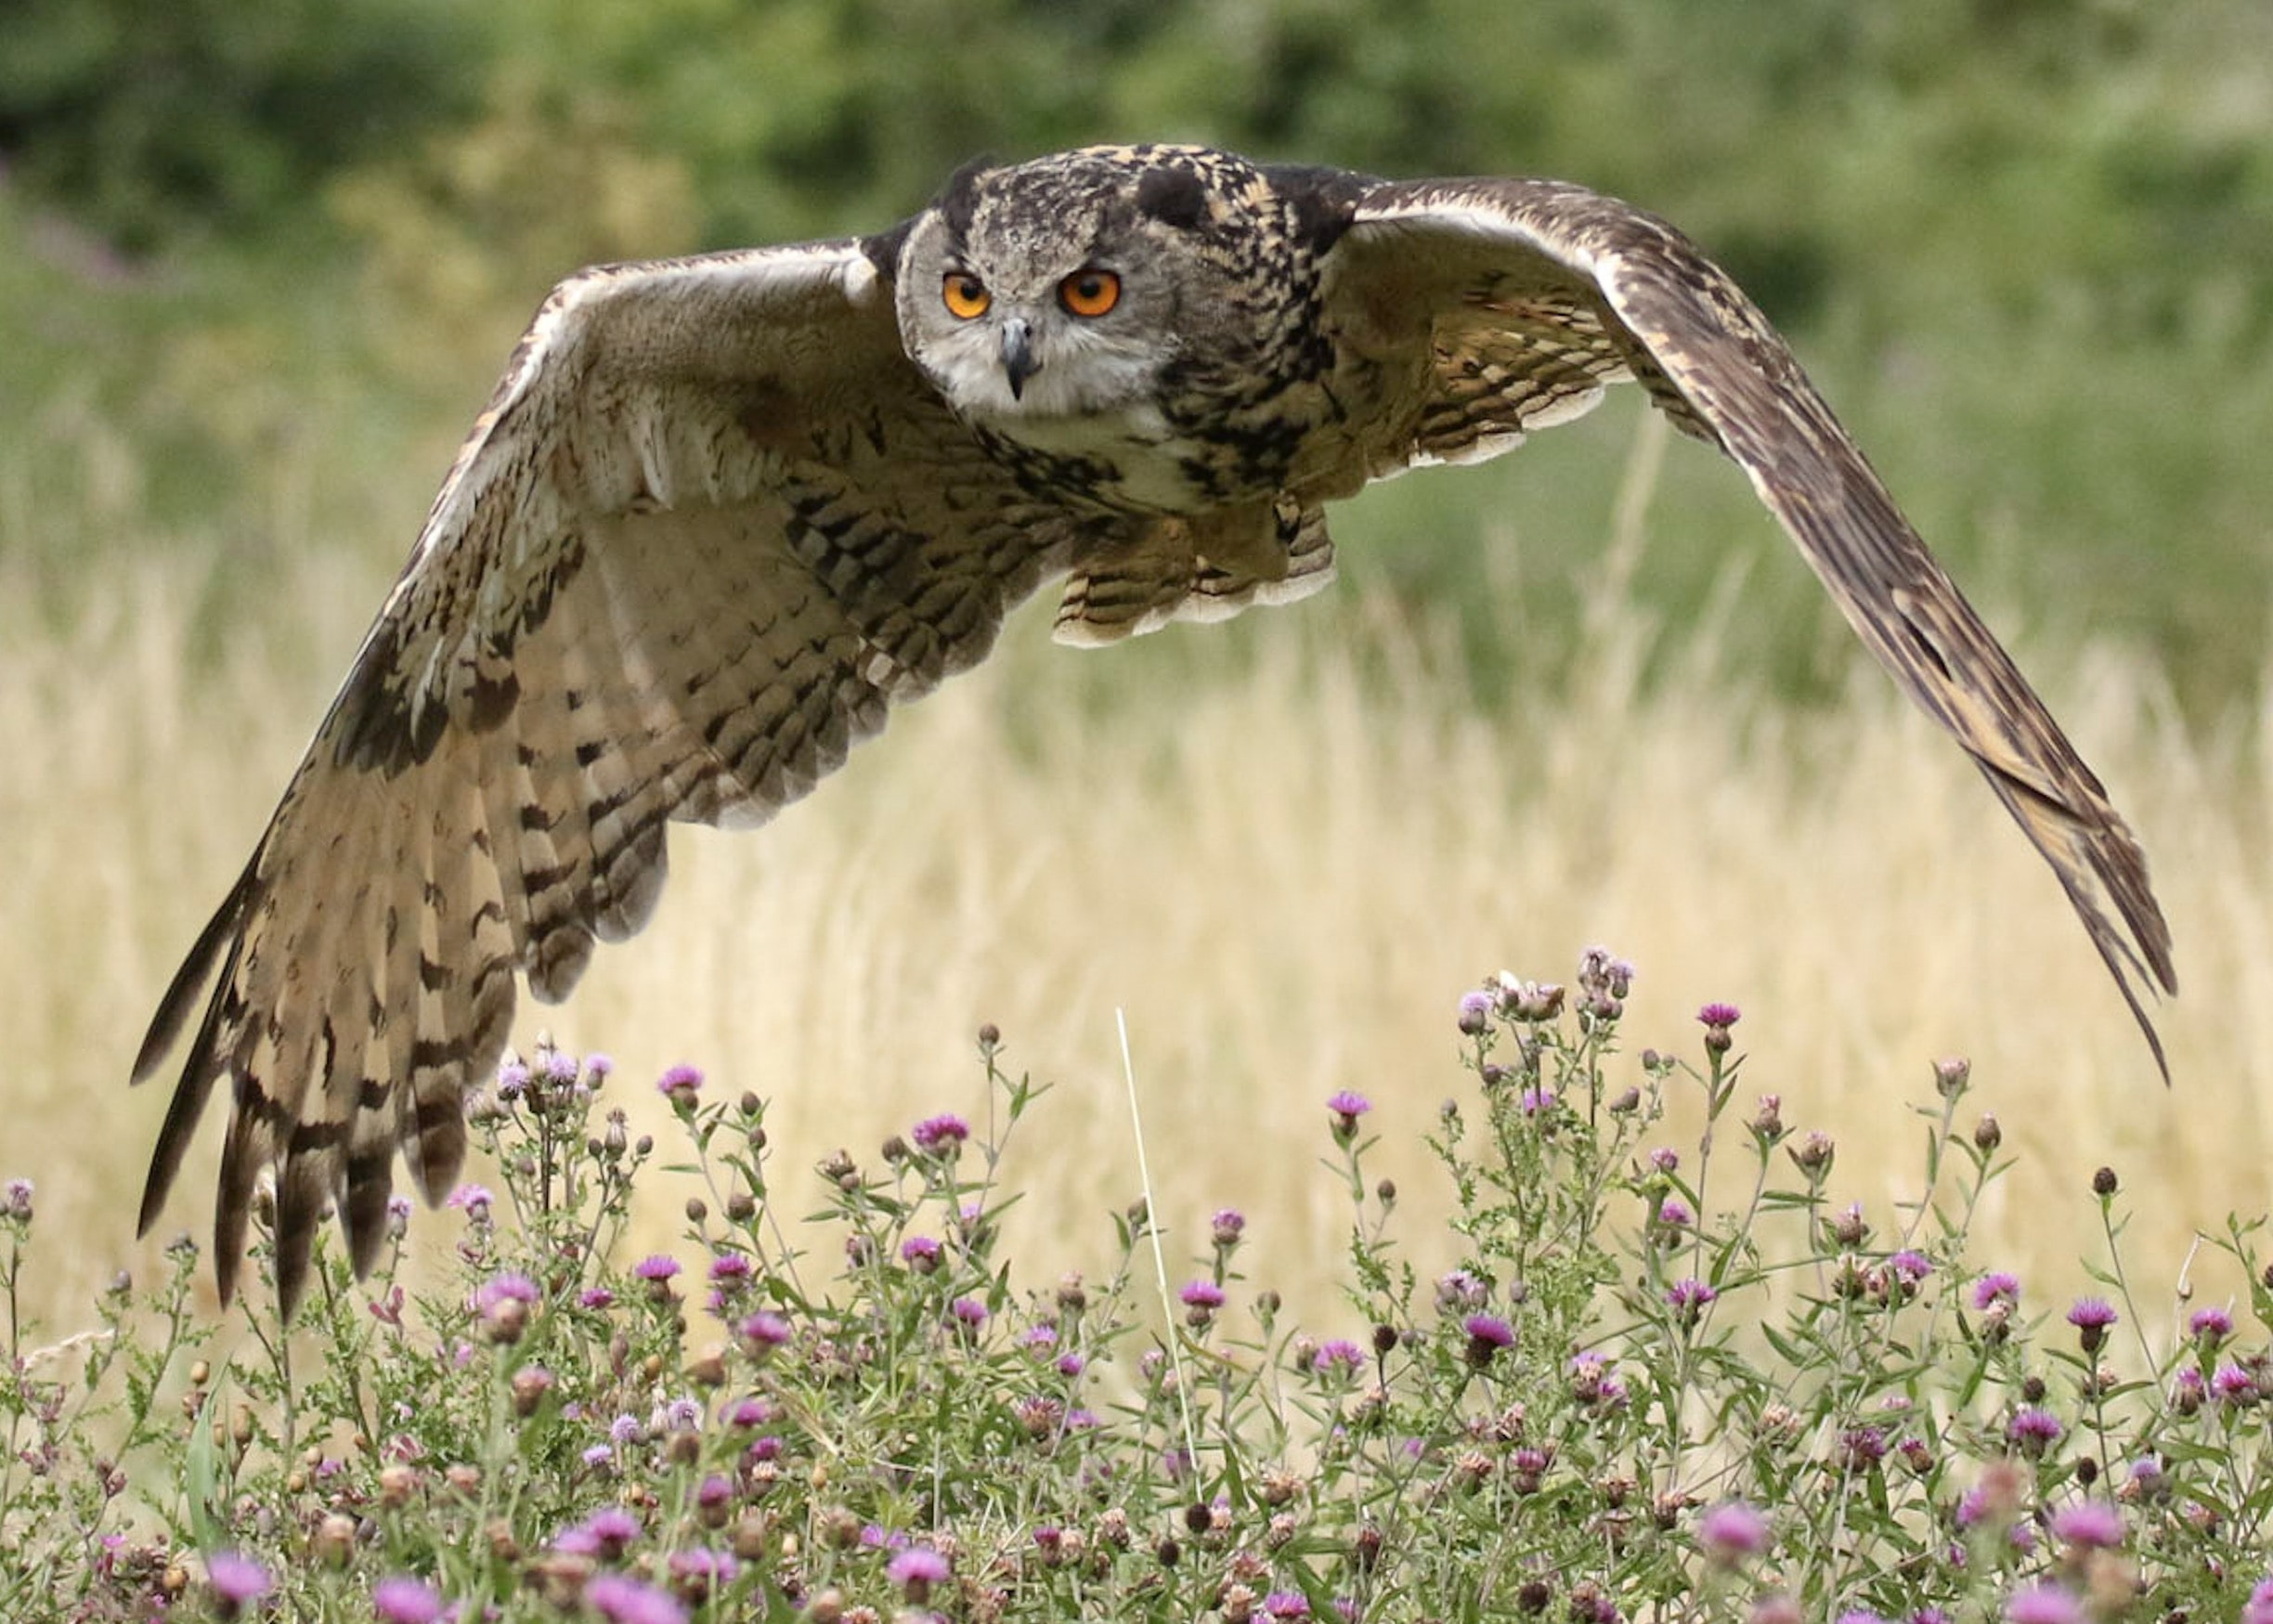 black and brown owl flying on grass field